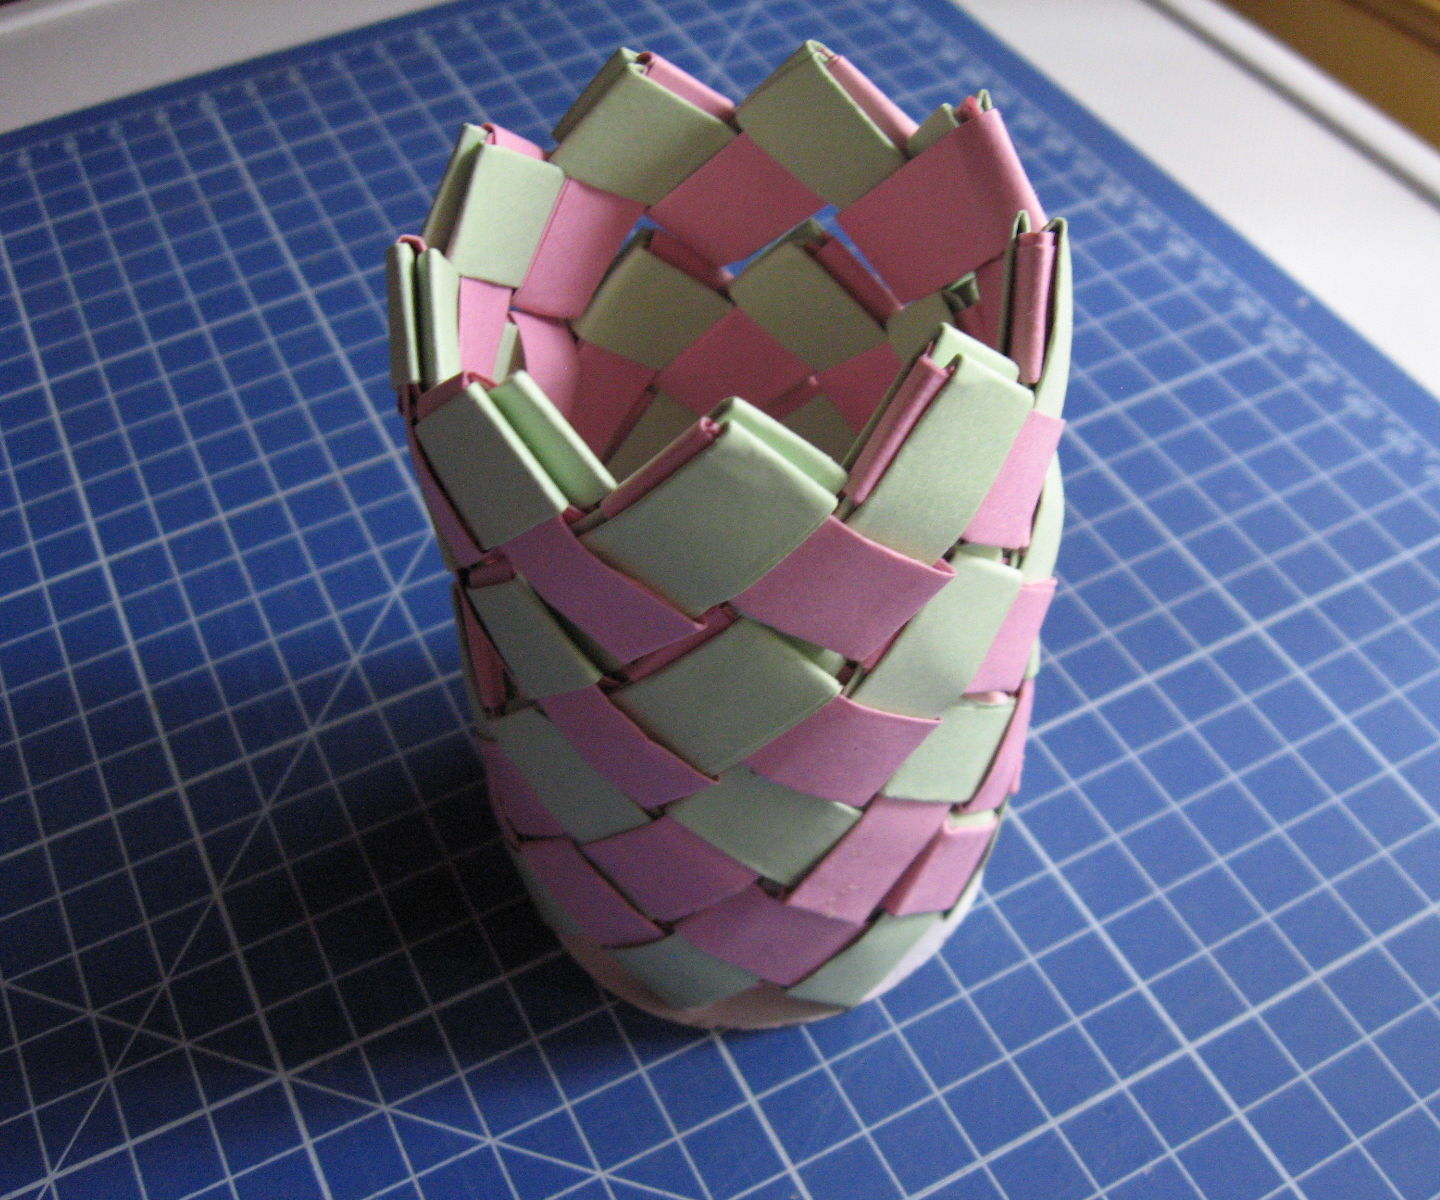 How to Make a Small Paper Vase